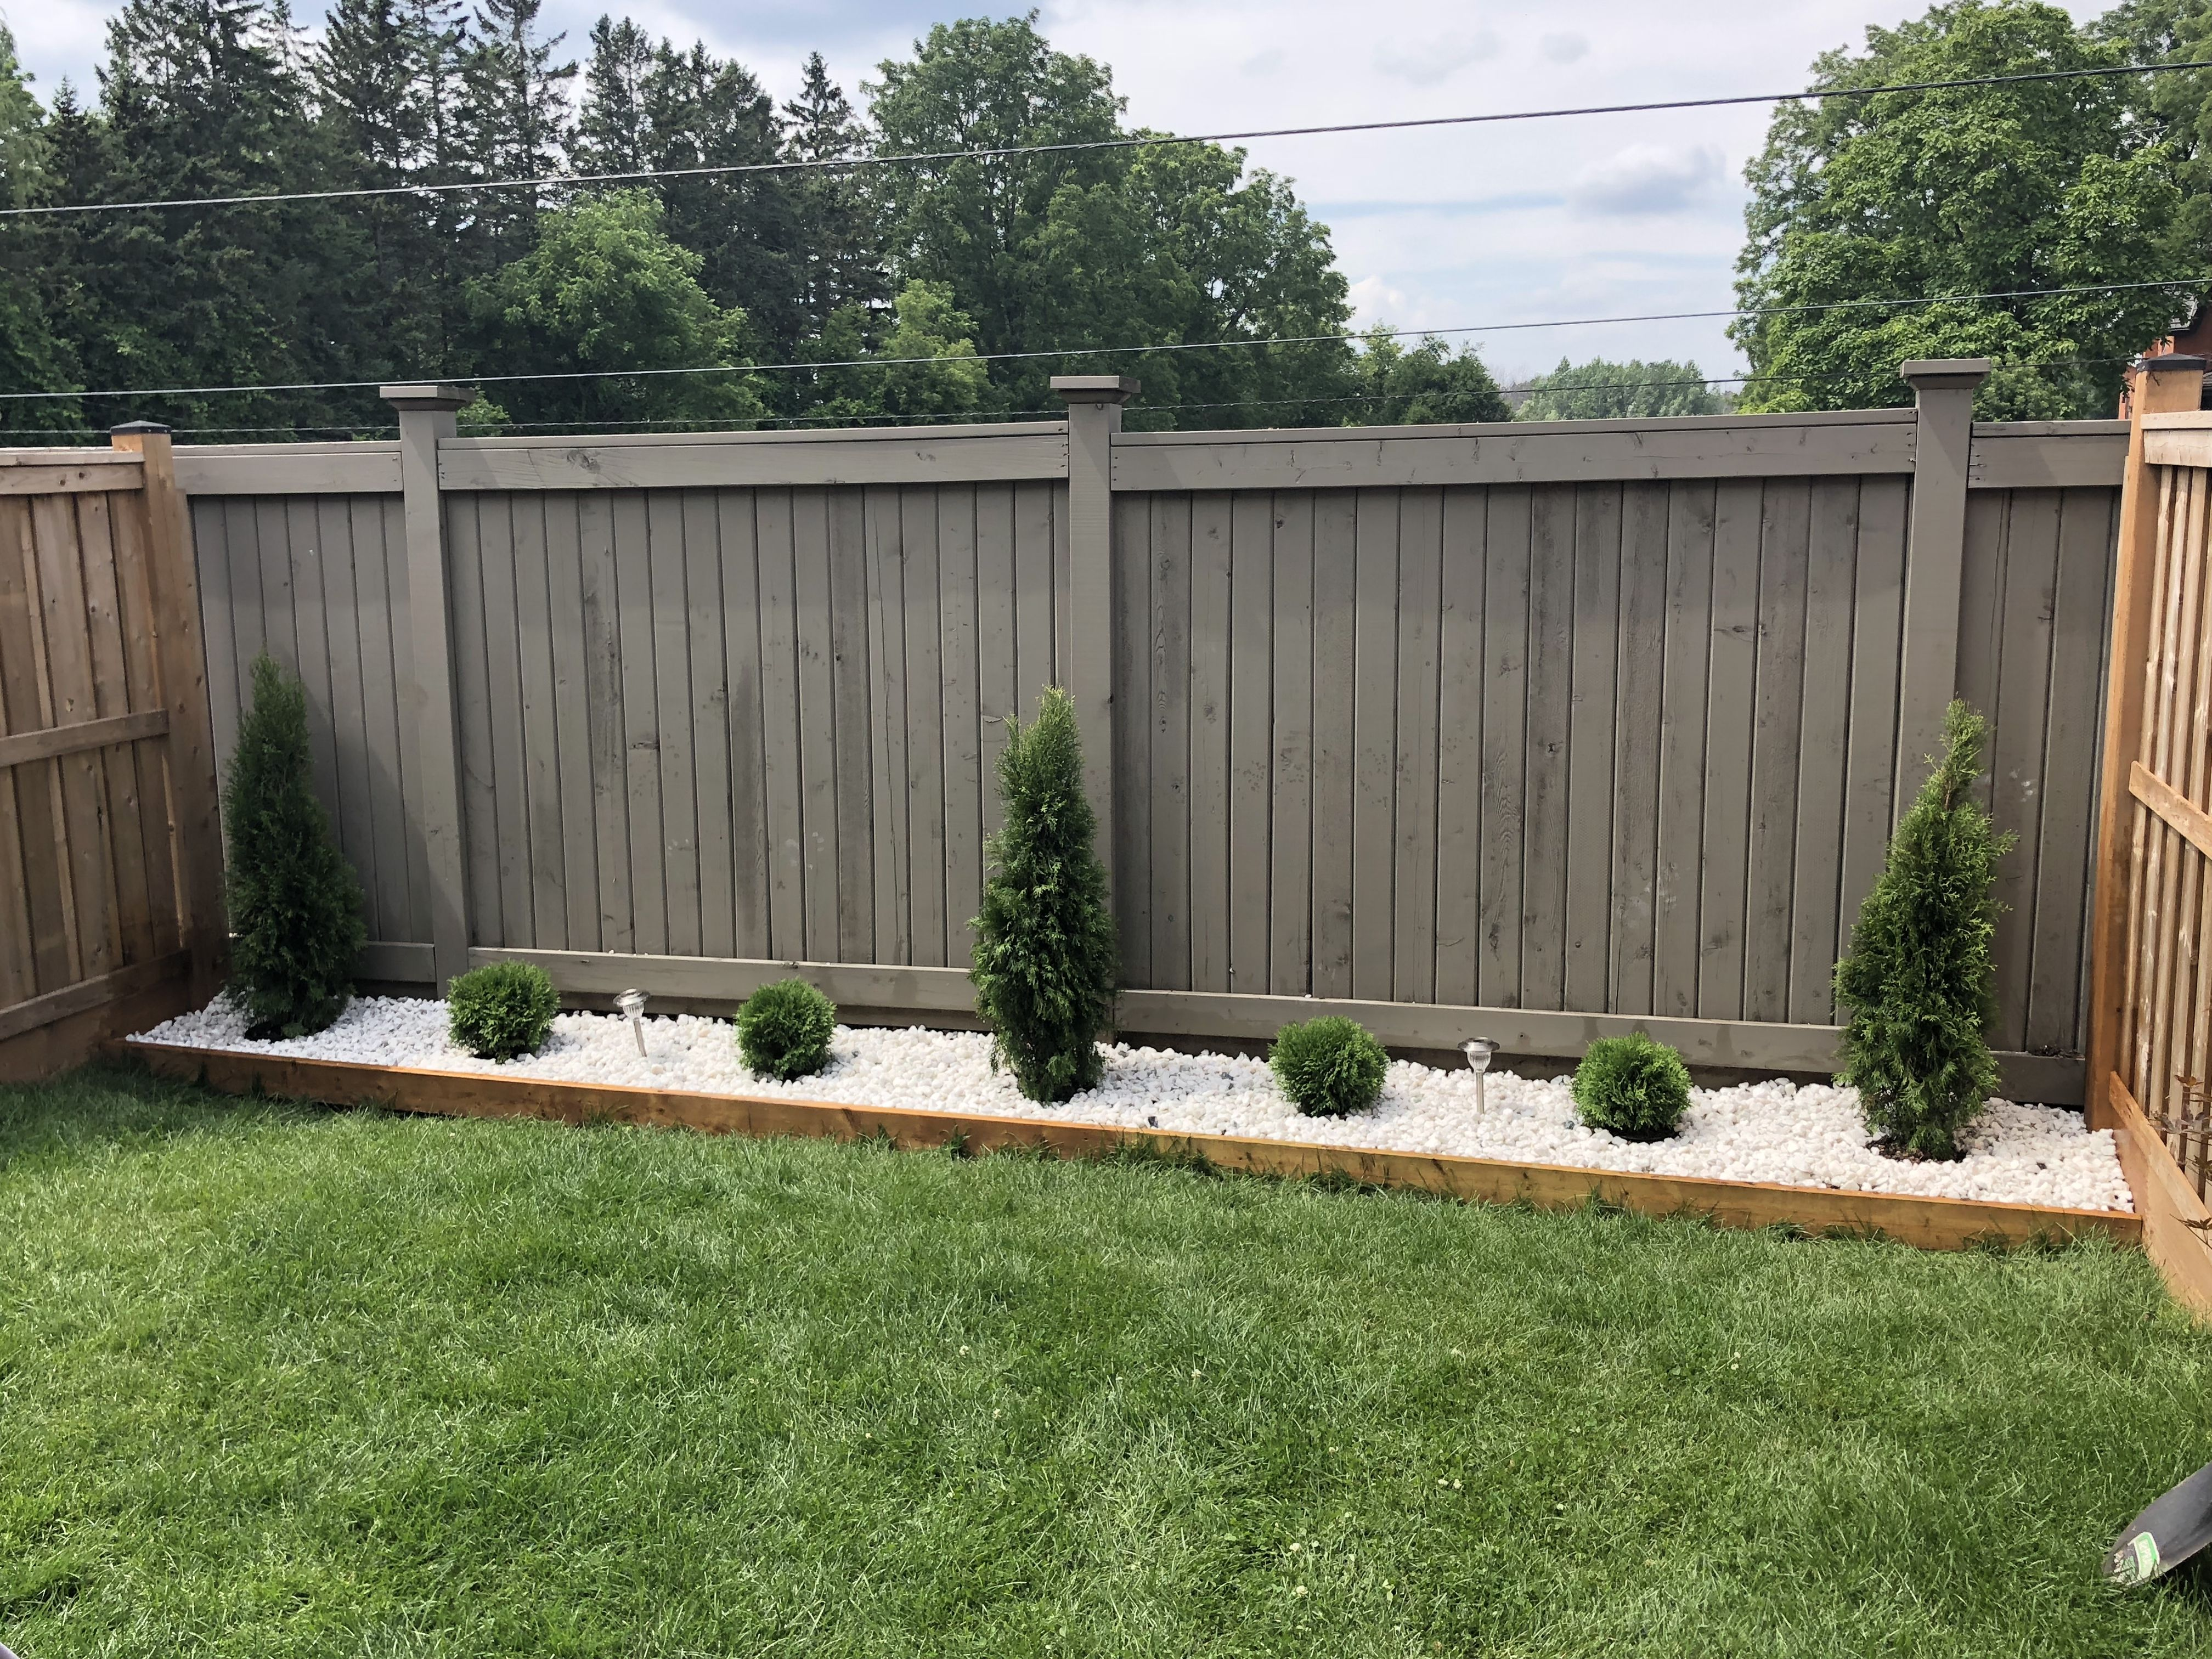 37 Stylish Privacy Fence Ideas For Outdoor Spaces Backyard